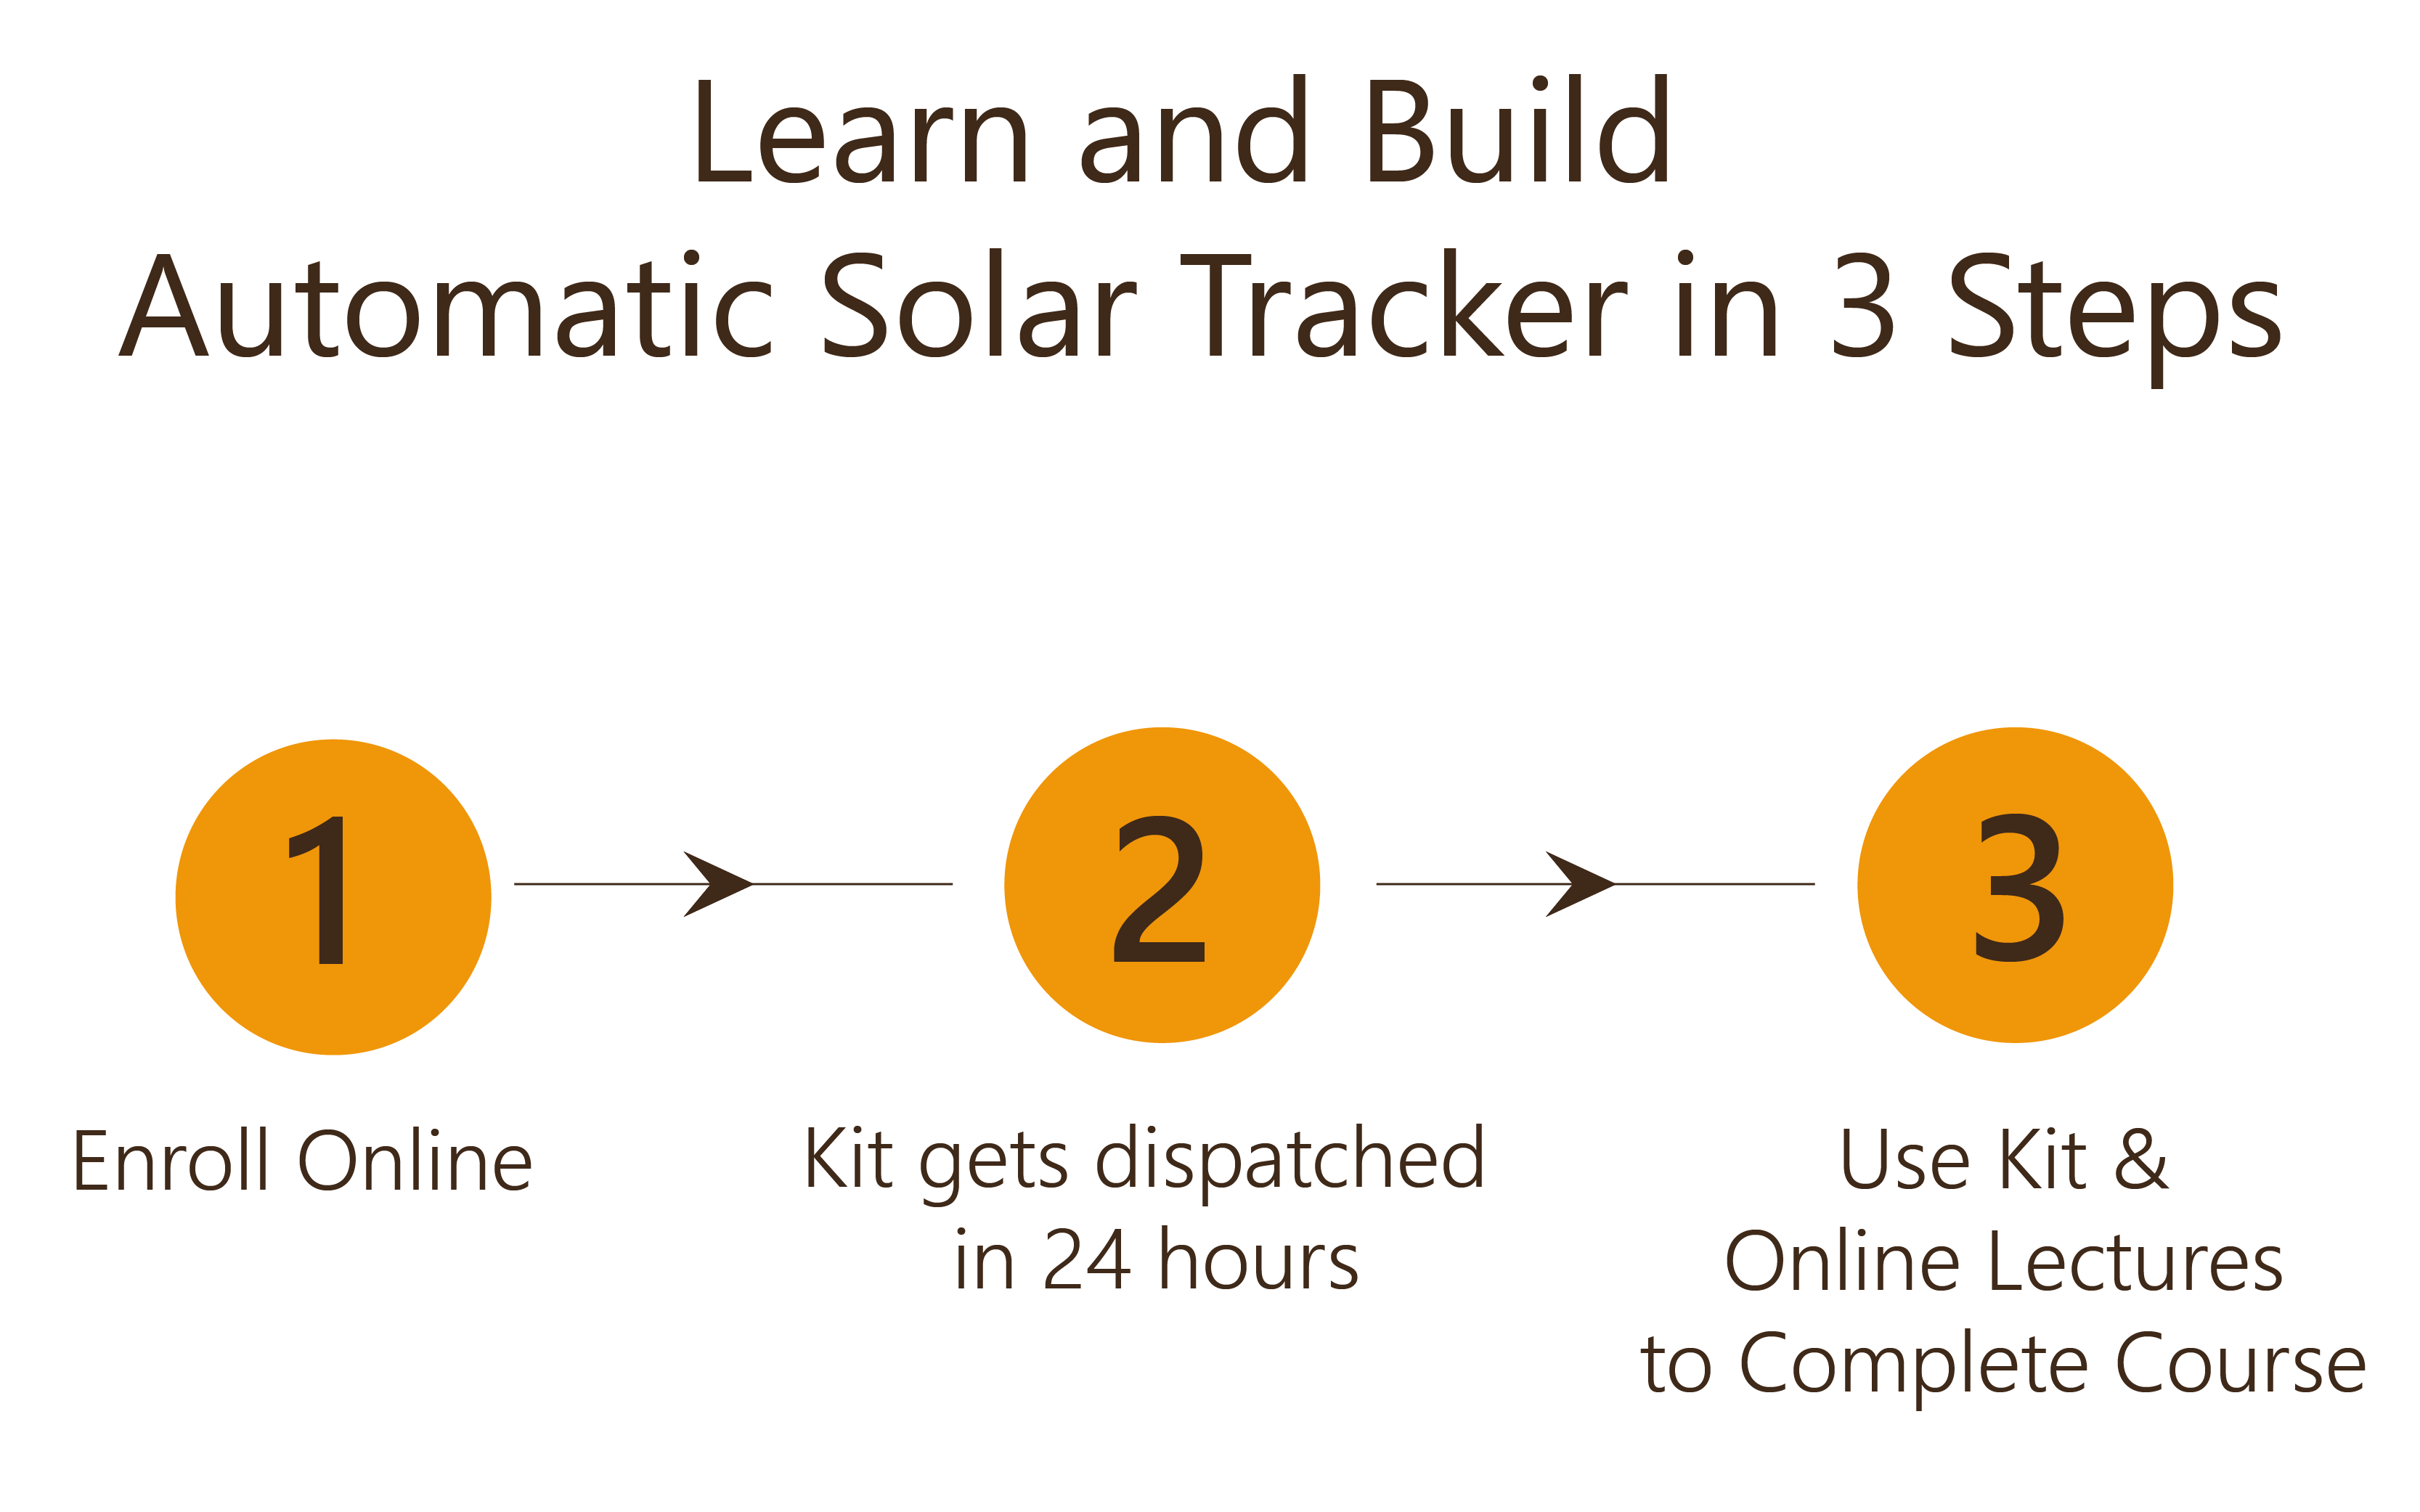 Learn and Build Automatic Solar Tracker in 3 Steps